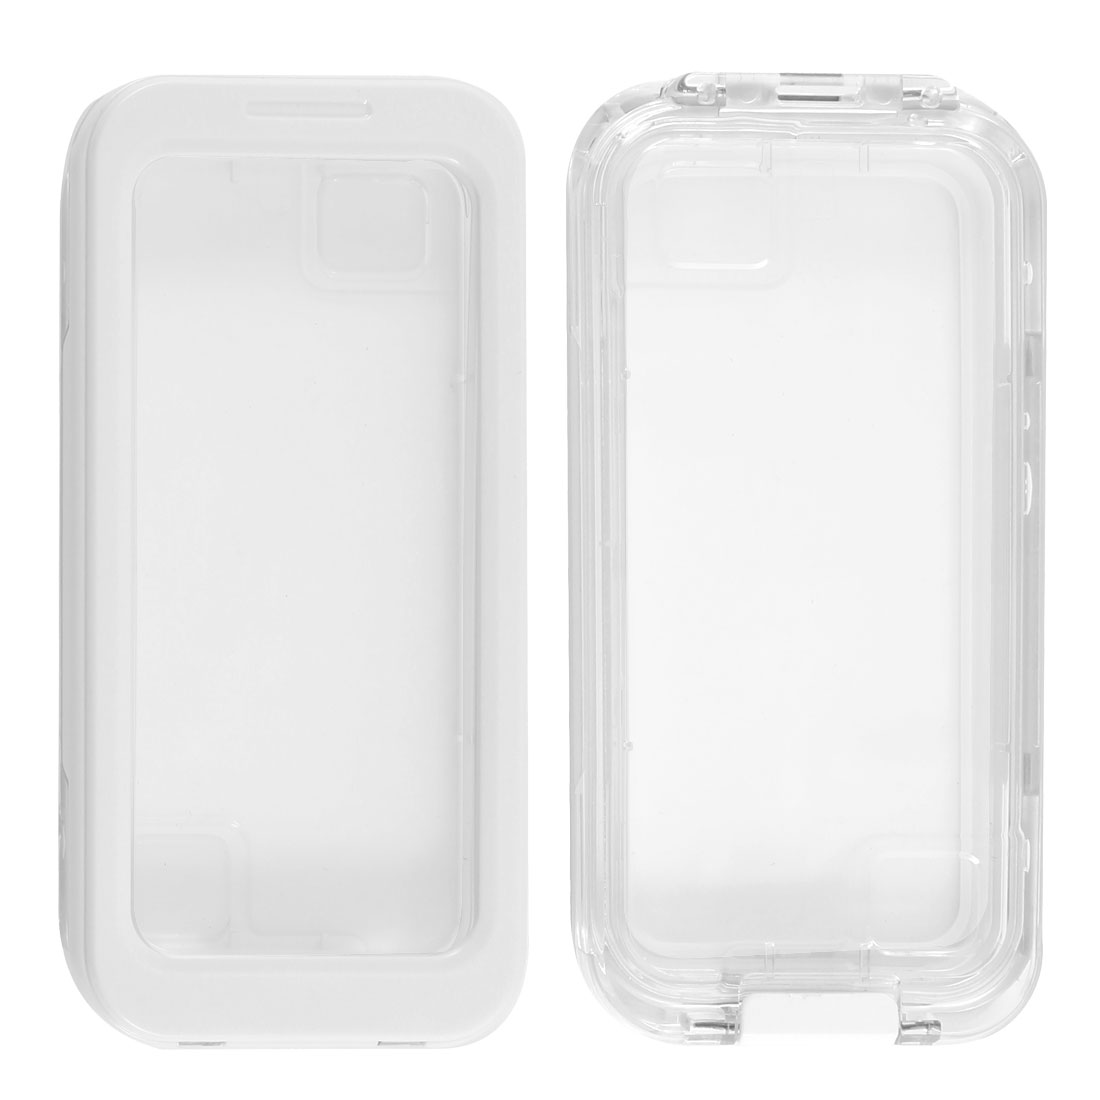 White Waterproof Snow Proof Case Cover Protector for iPhone 4 4G 4S 5 5G 4GS